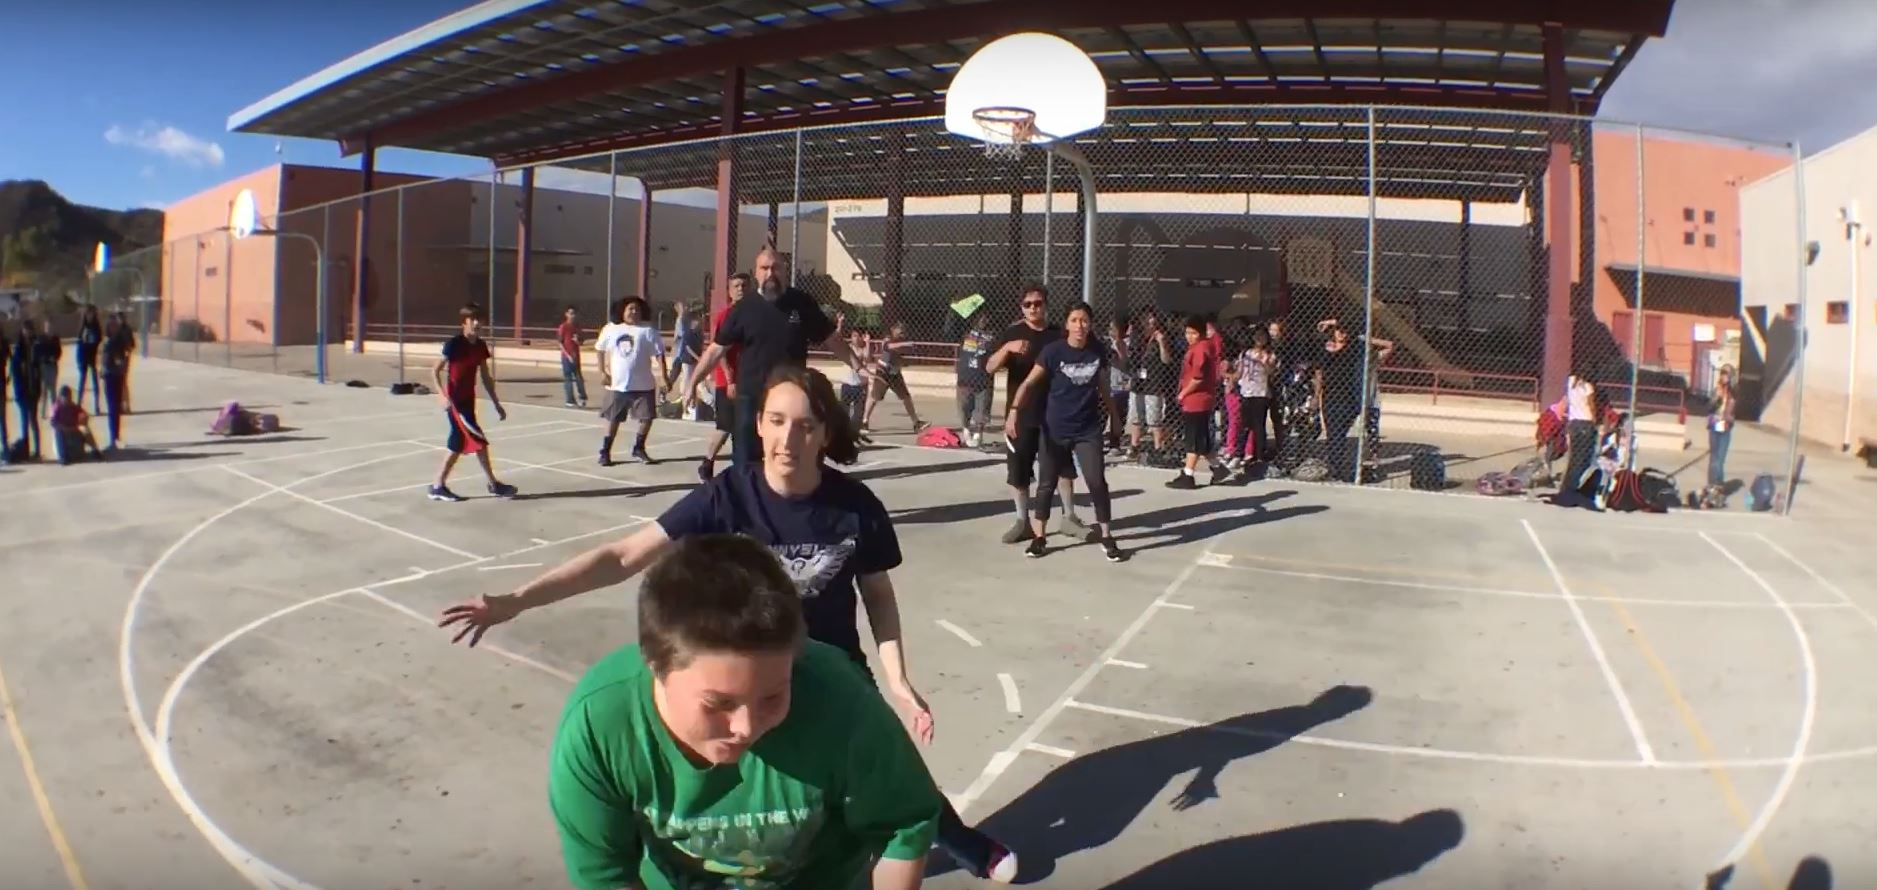 The power of a caring adult can change a child's life KidsatHopeBasketballGame